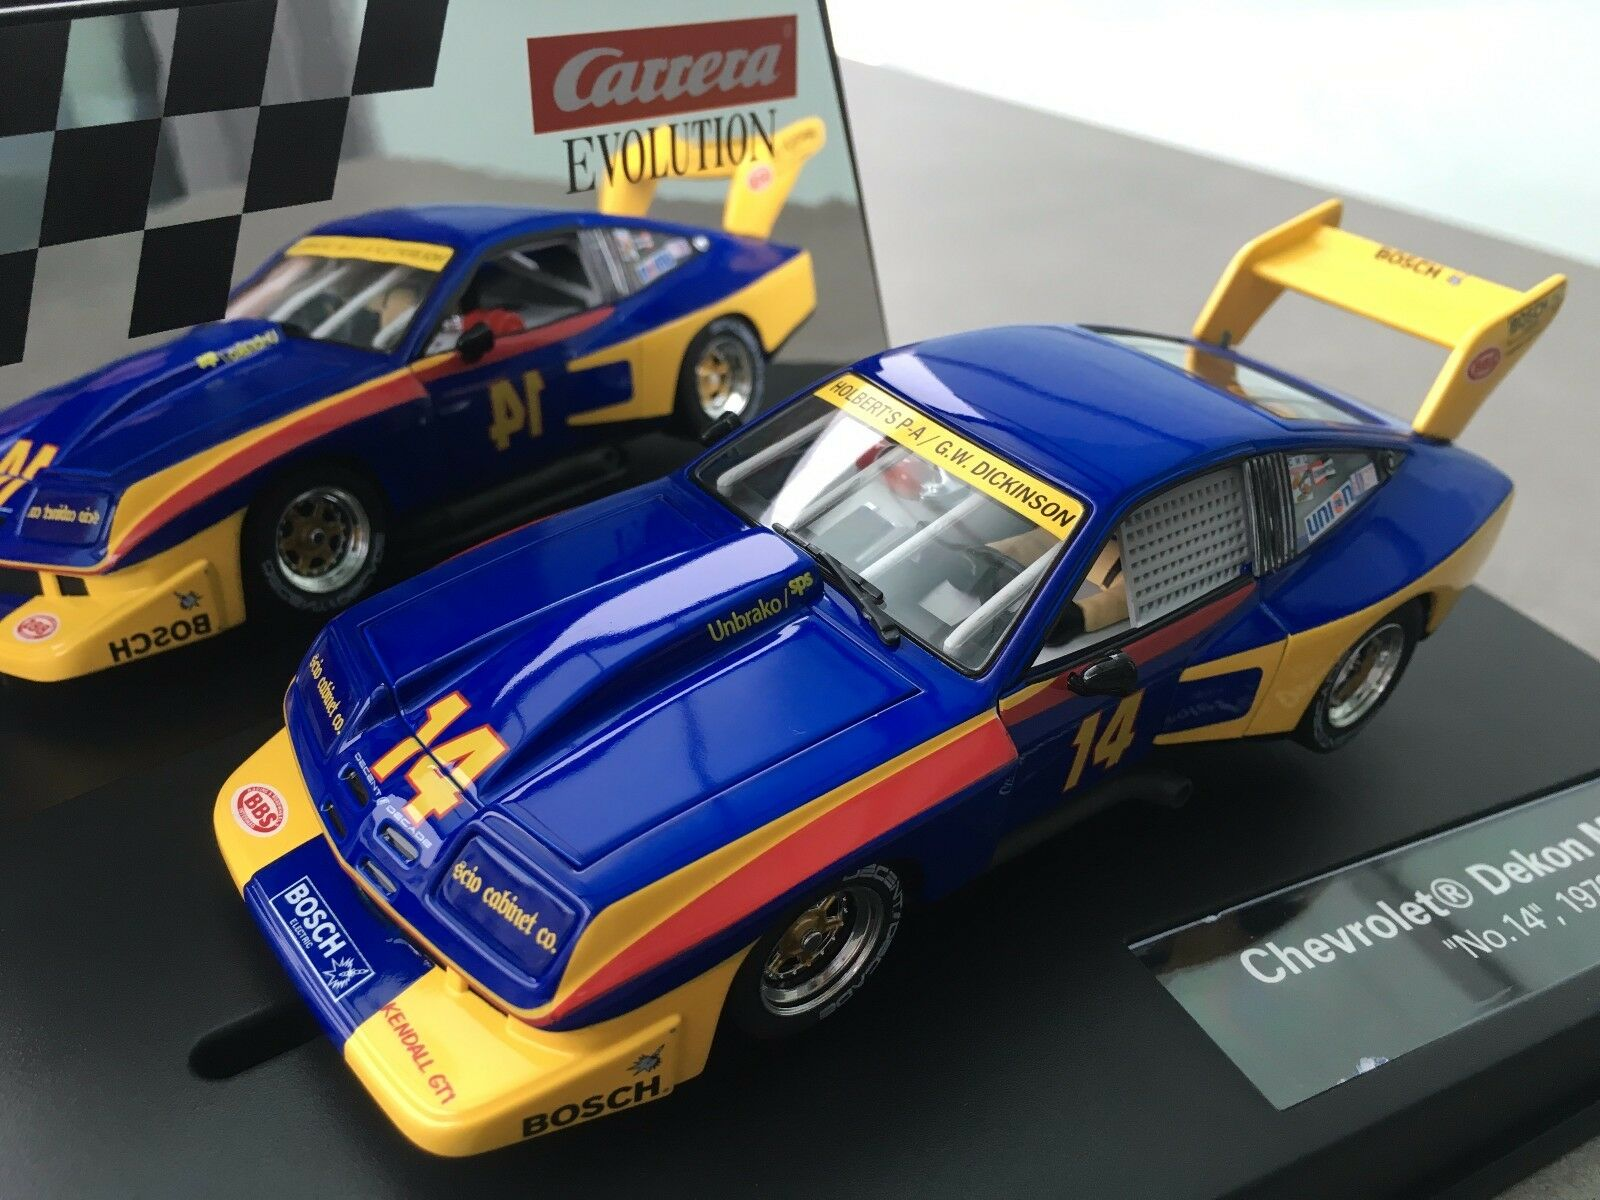 Carrera Evolution 27490 Chevrolet Dekon Monza   no. 14  , 1978 NIP